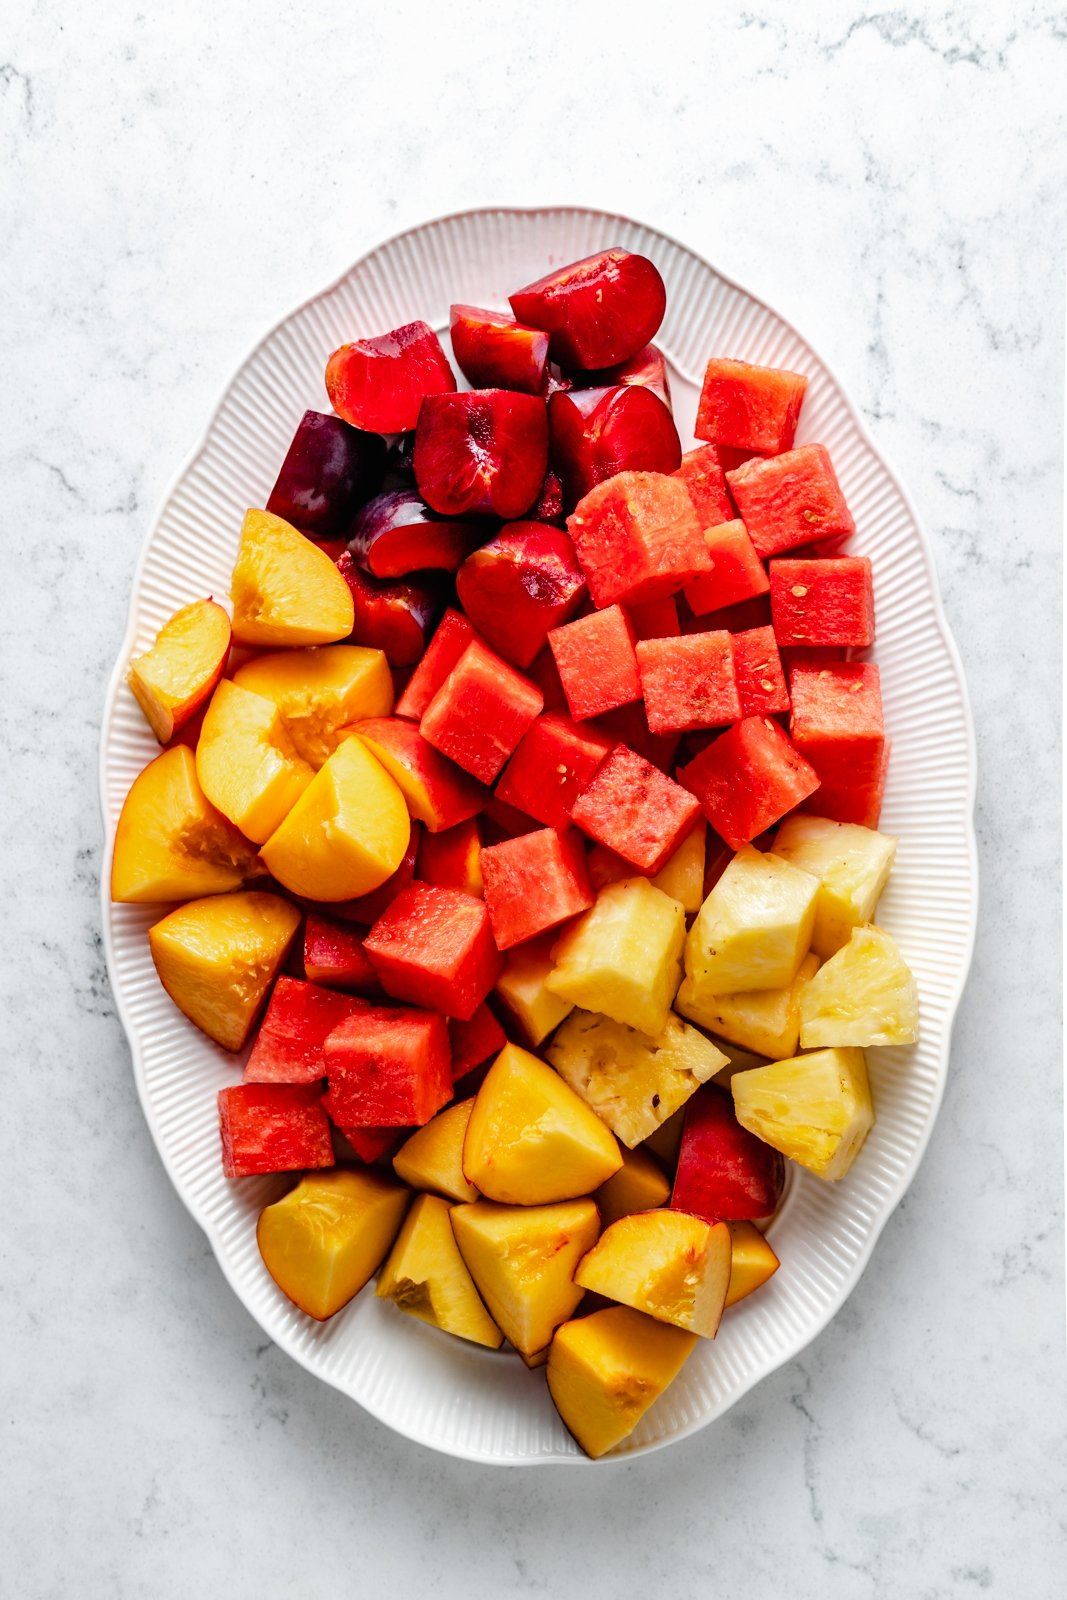 fruit cut into cubes on a tray